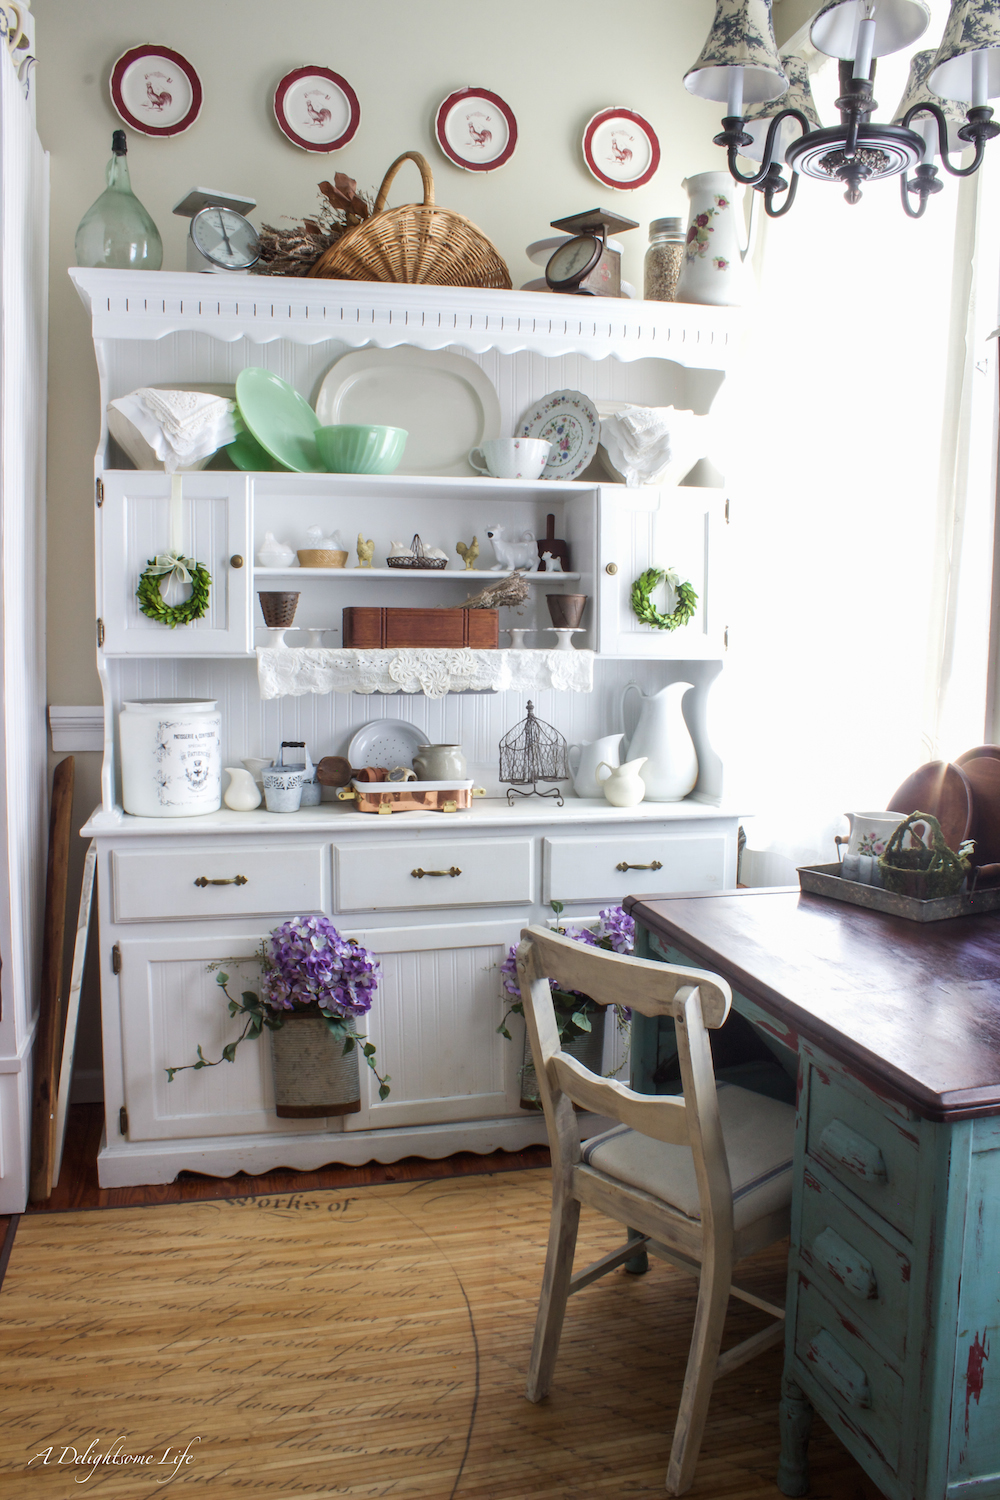 Best Sprucing Up Kitchen Decor For Spring This Month